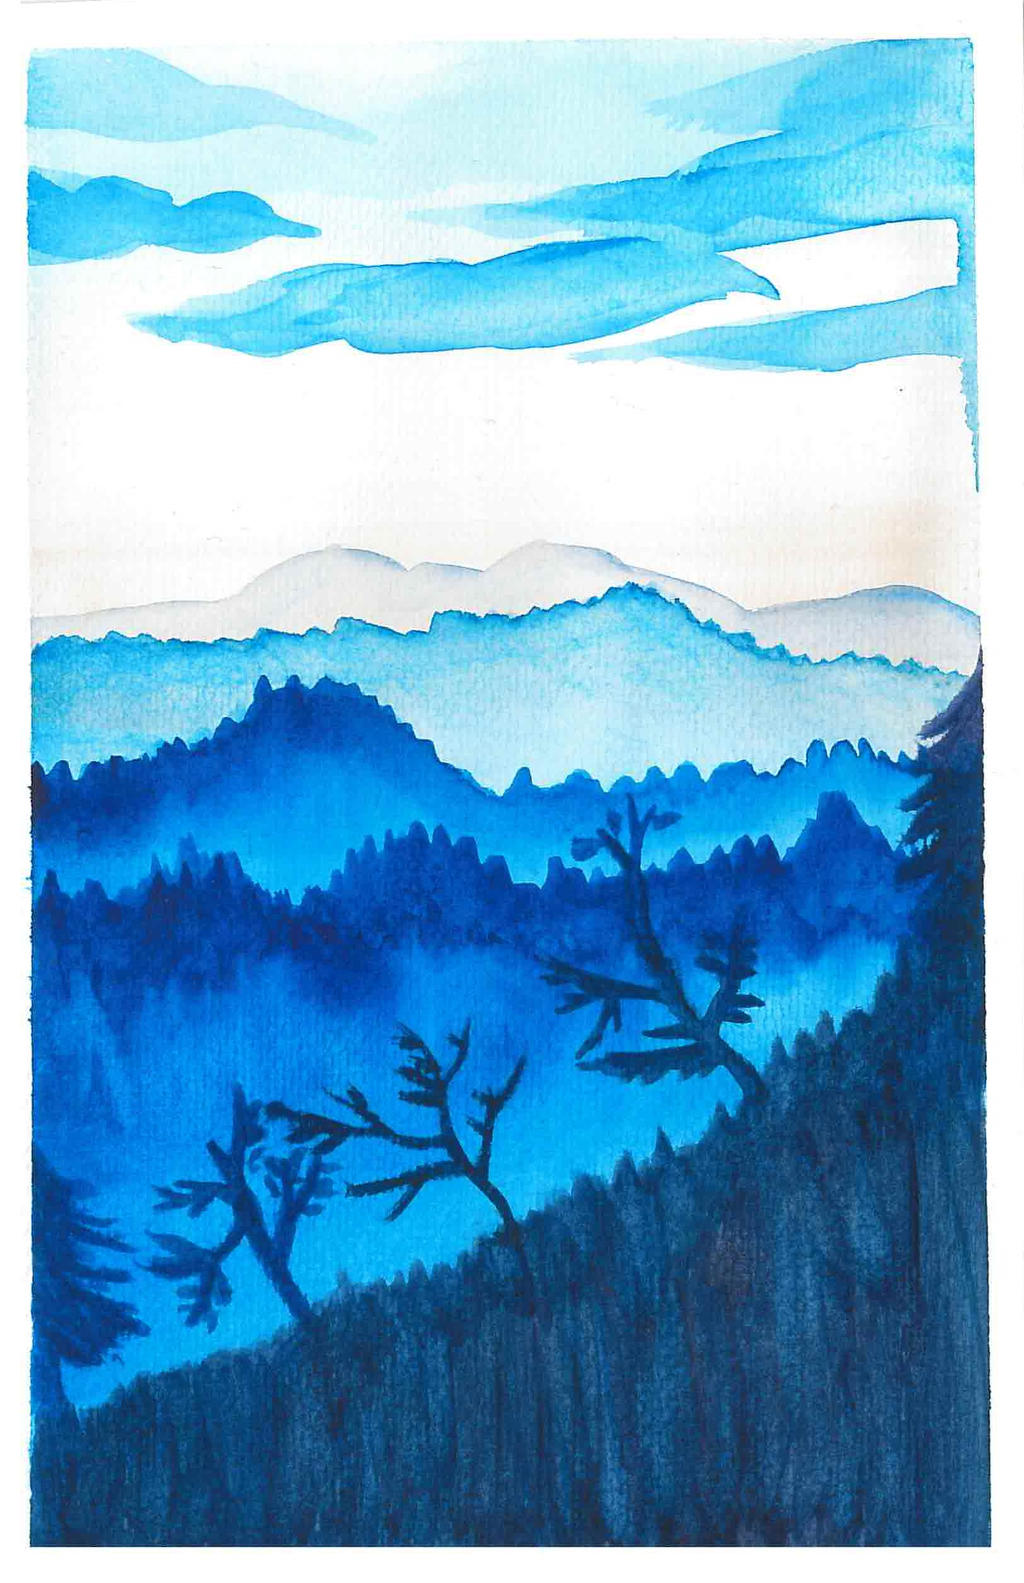 Watercolor mountains by vihervirveli